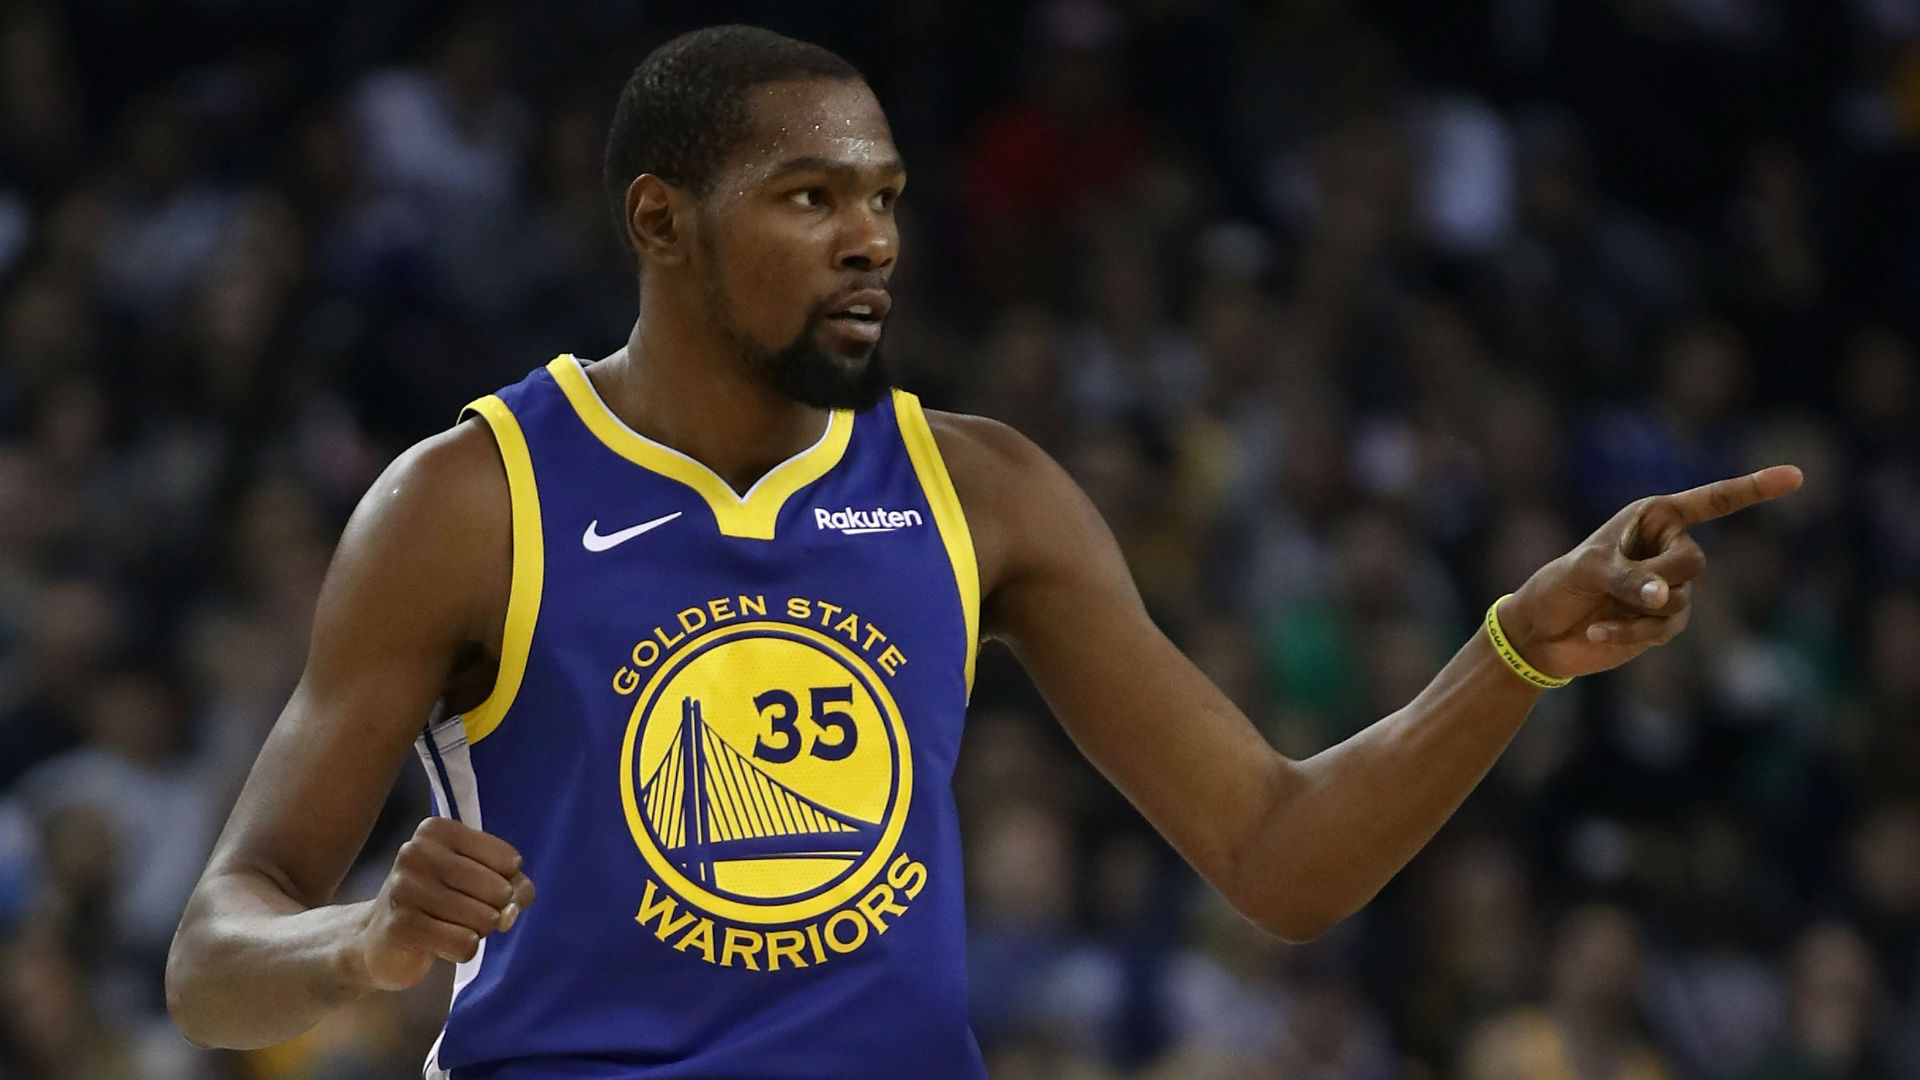 On the heels of the NHL expanding to the Pacific Northwest, Kevin Durant would love to see an NBA team return to Seattle.